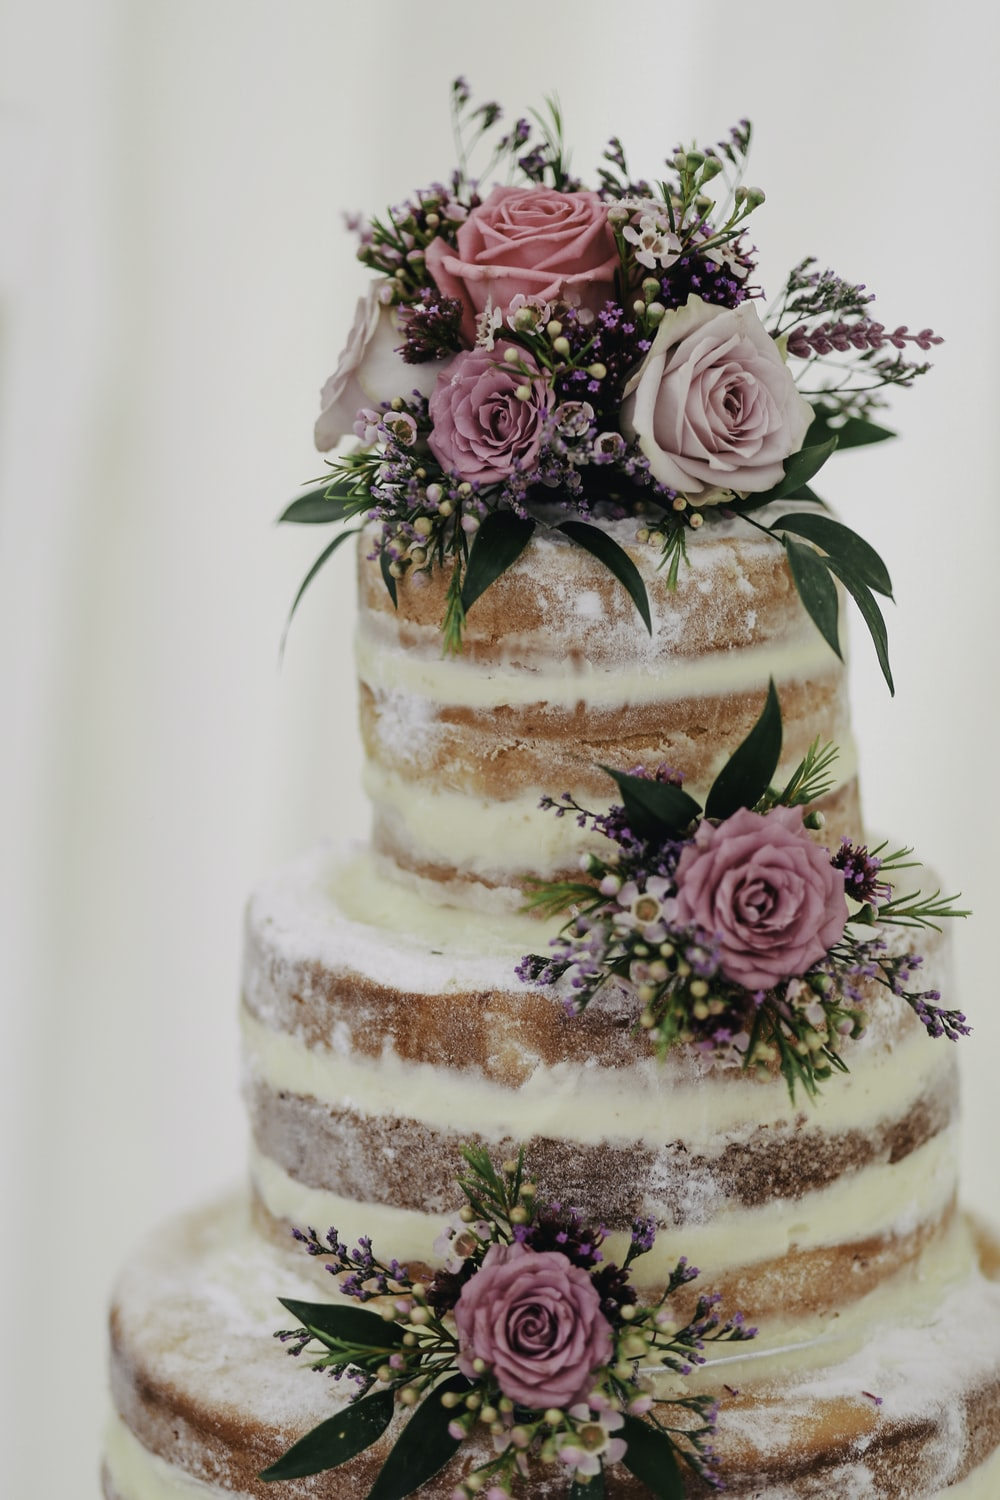 Amazing 3 Layer Cake With Flowers Accent Photo Free Cake Image On Unsplash Funny Birthday Cards Online Hendilapandamsfinfo